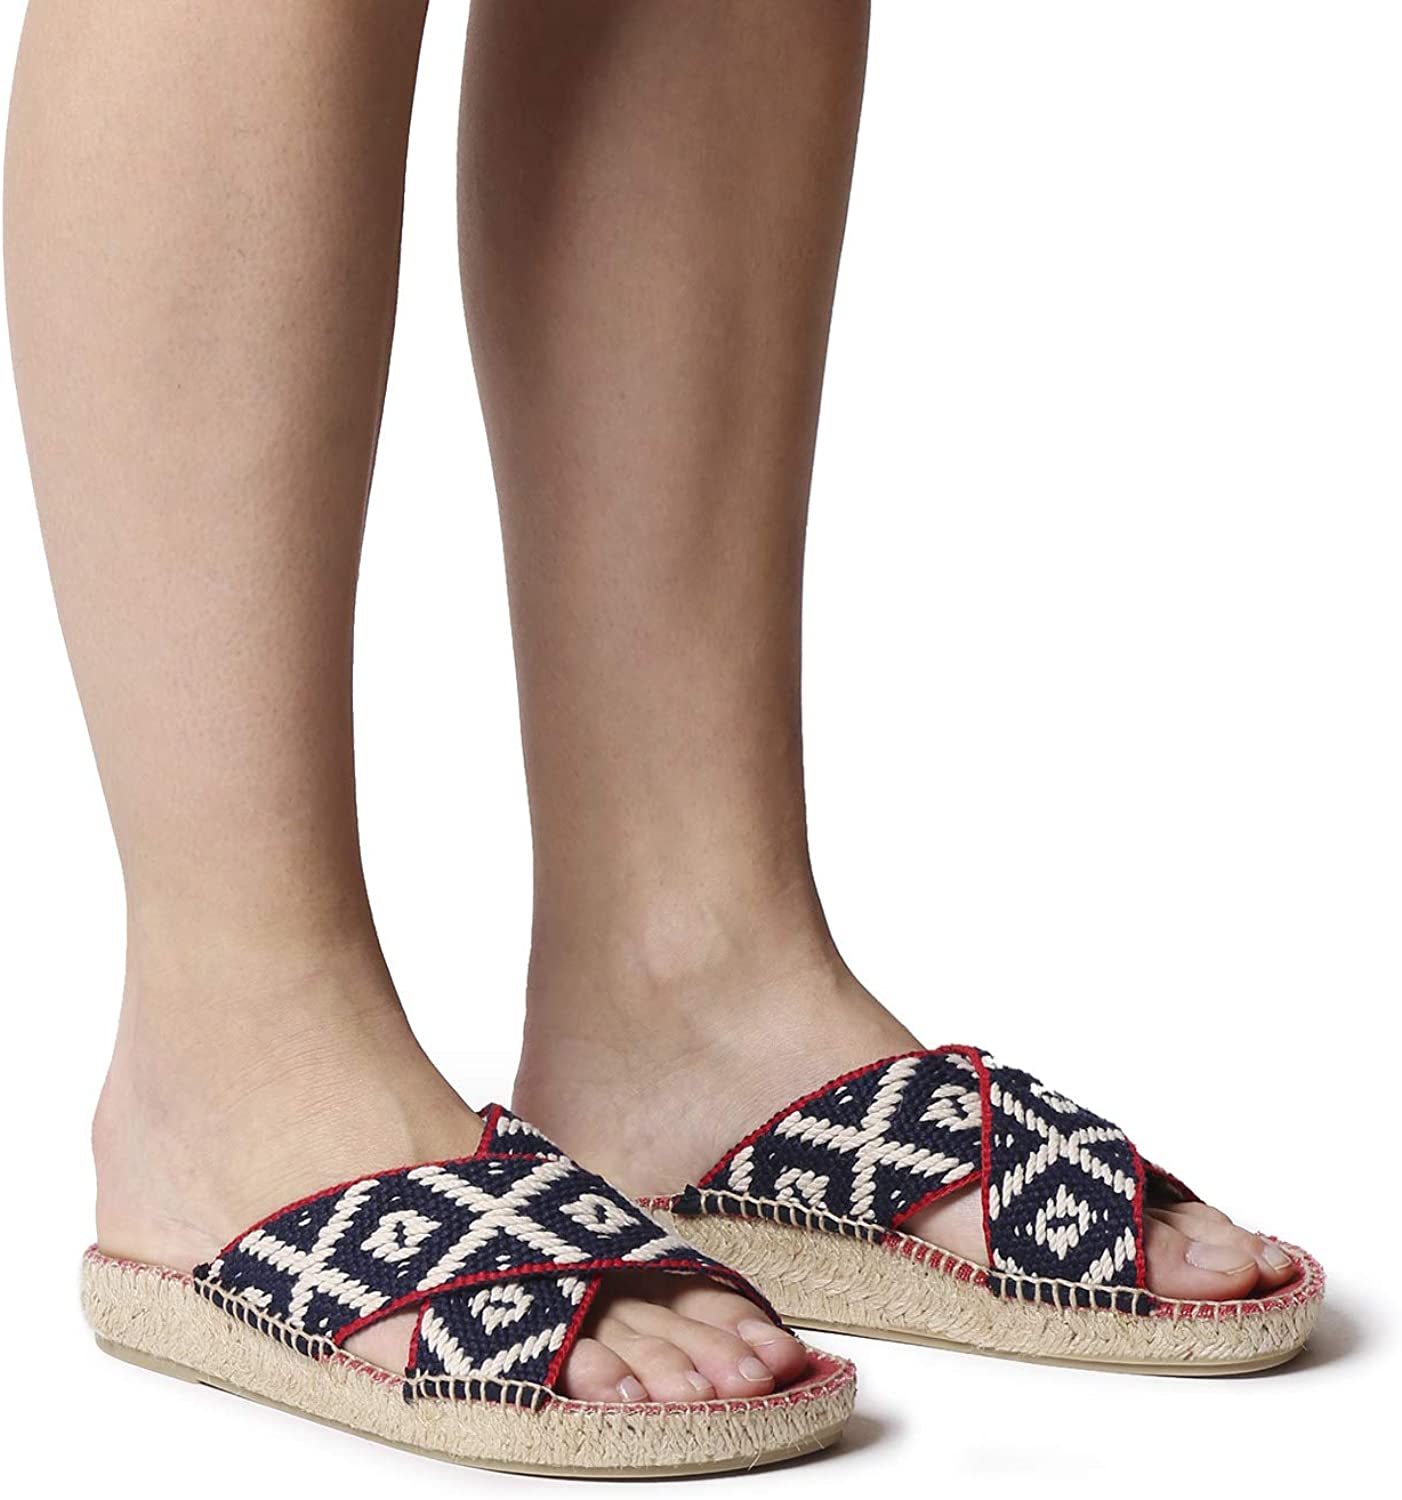 Toni Pons Bali-BK Espadrille for Woman Made of Cotton.